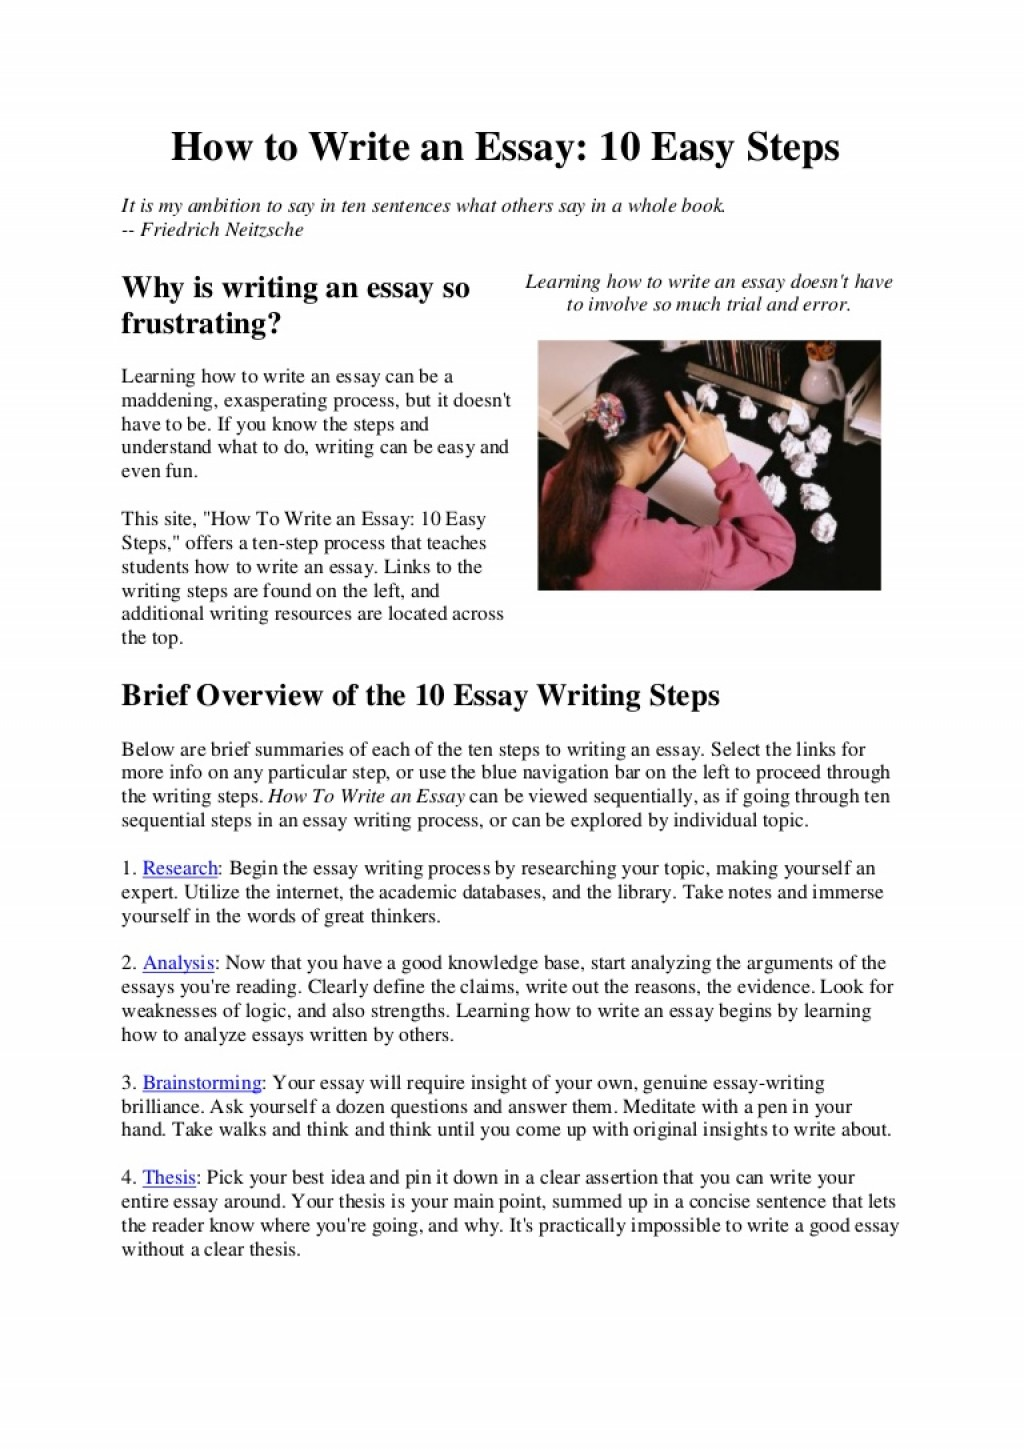 003 Cause And Effect Essay Should Sequential Meaning It Example Howtowriteanessay Thumbnail Wonderful A Be Large